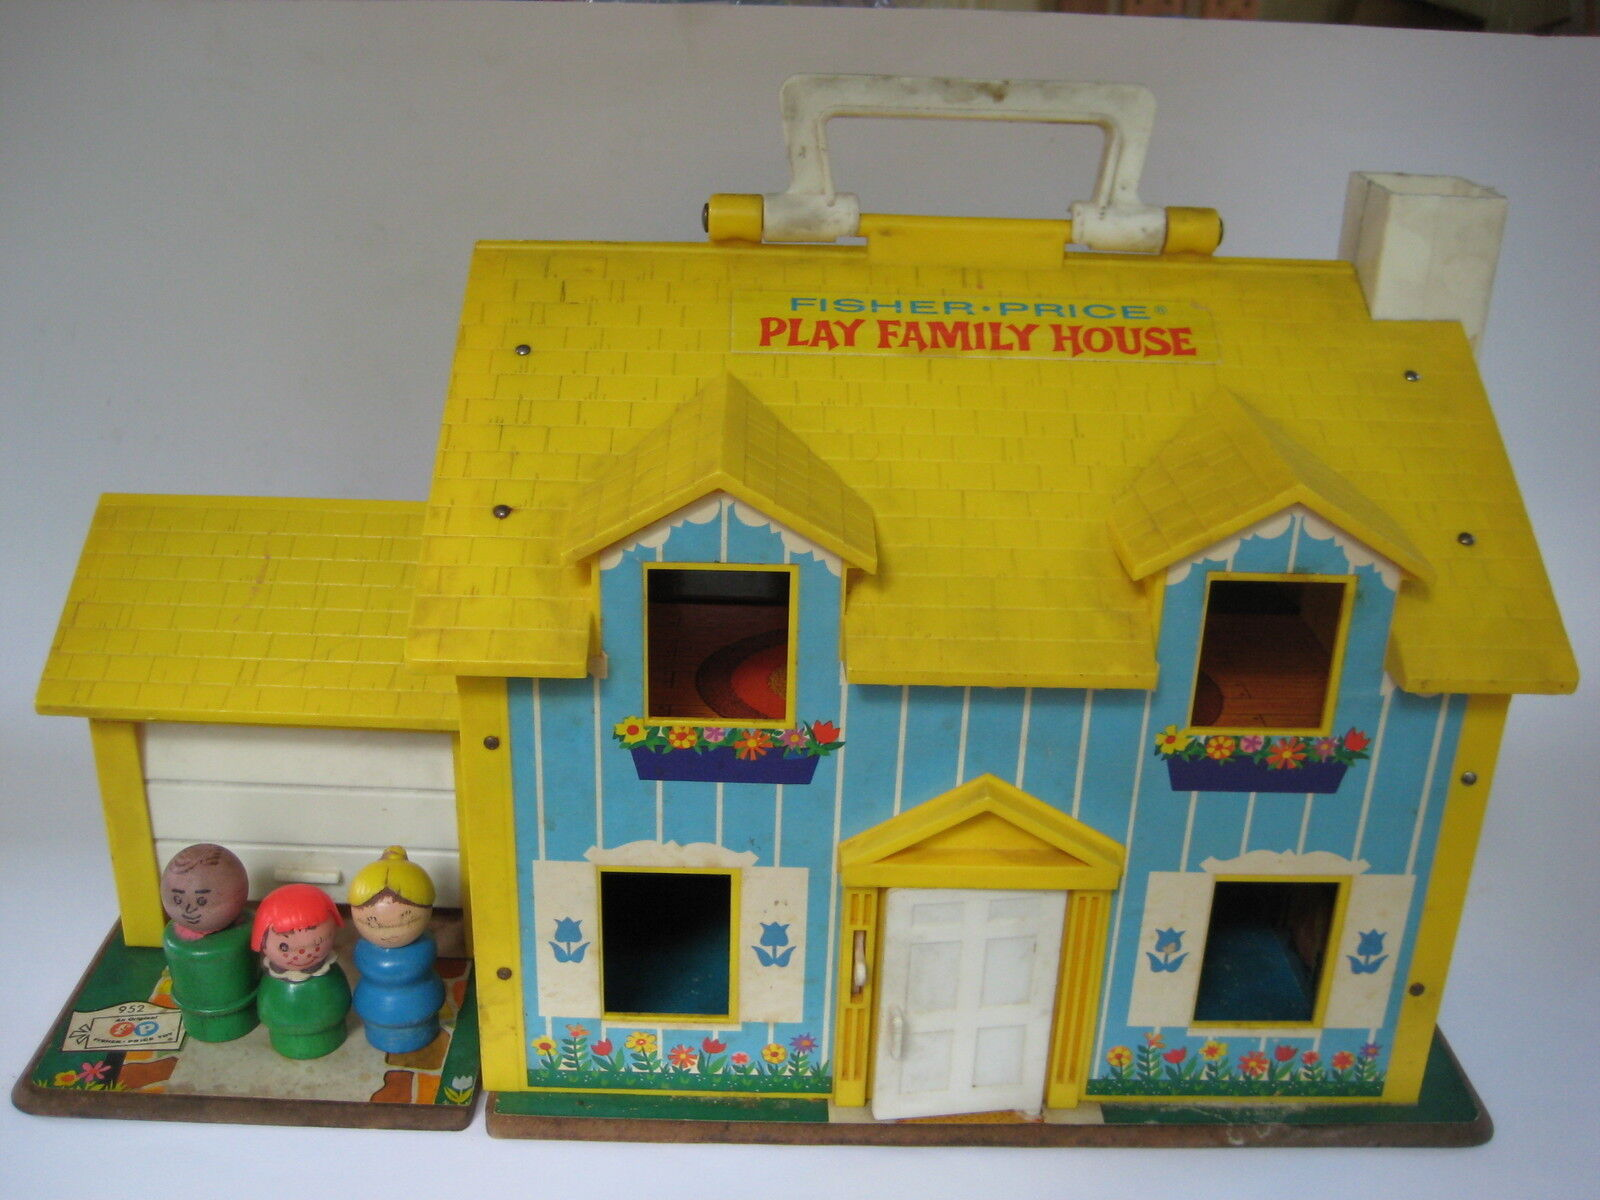 Vtg 1969 Fisher Price PLAY FAMILY HOUSE little people figure yellow home set 952